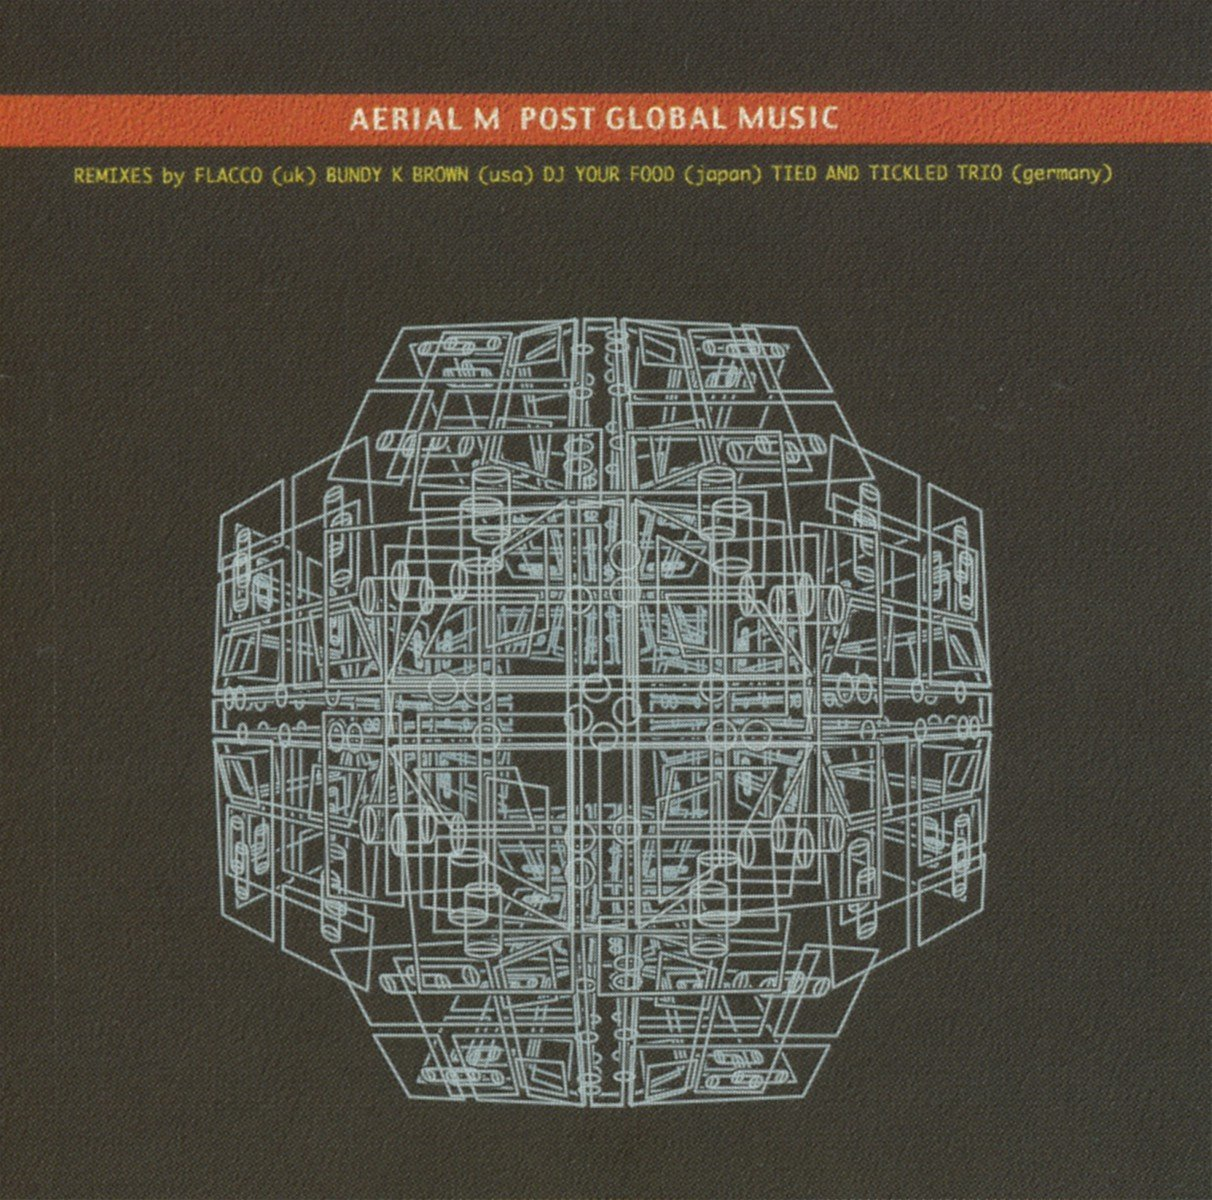 CD : Aerial M - Post-global Music (CD)